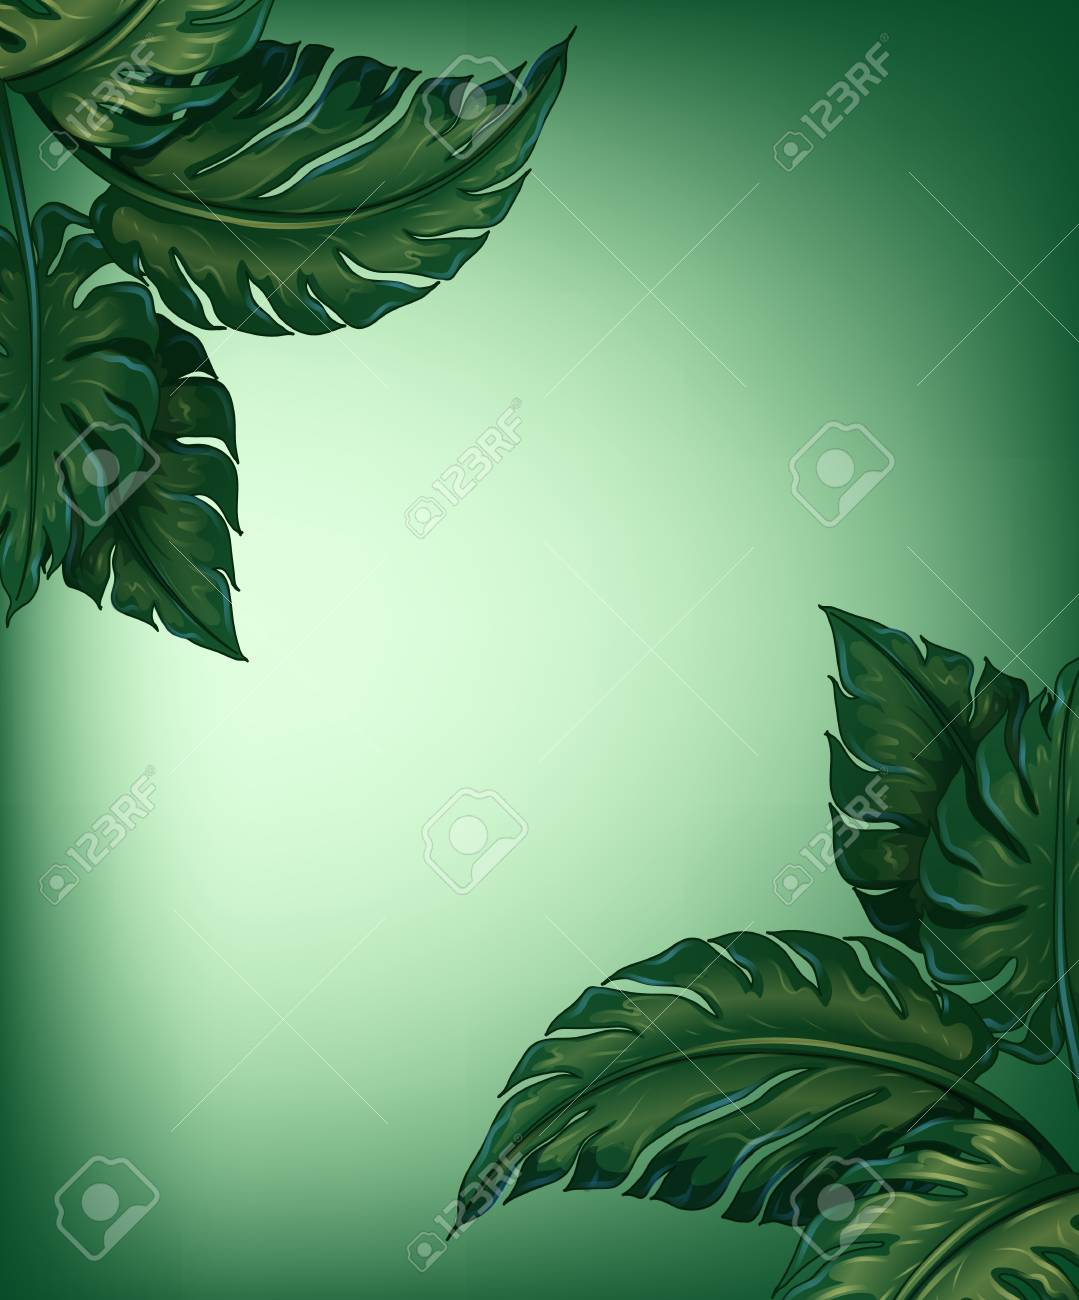 Illustration of greenery leaves for decoration Stock Vector - 17358272